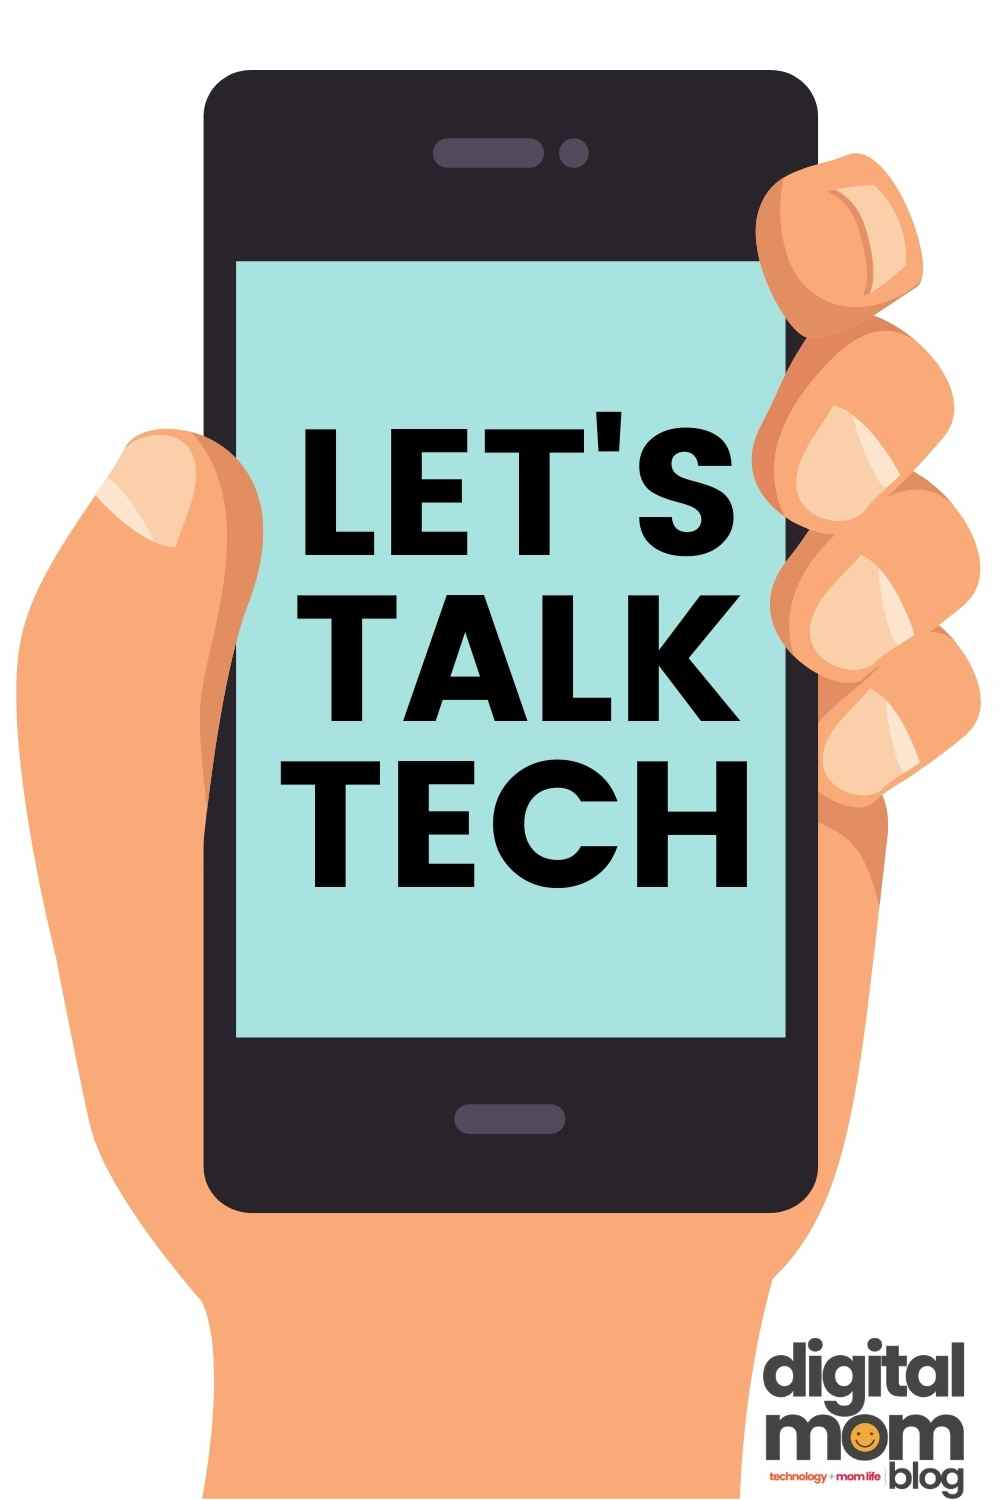 technology - lets talk tech at digital mom blog